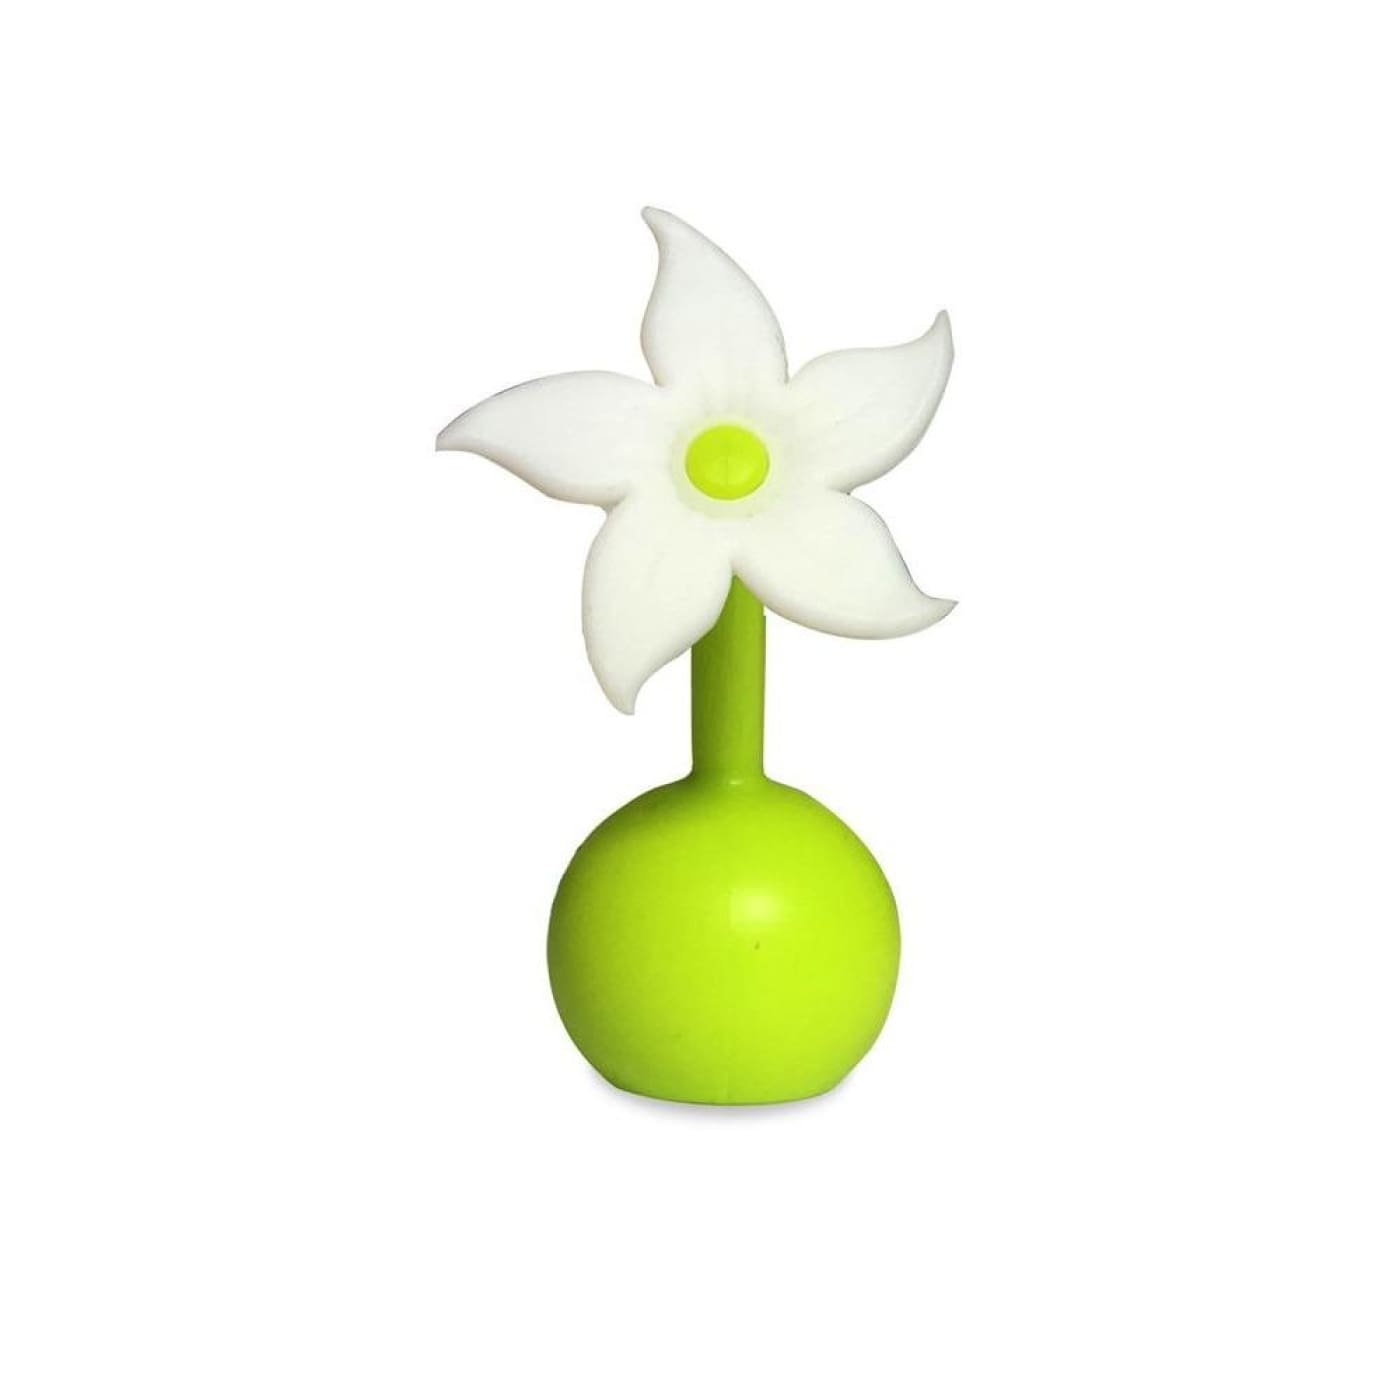 Haakaa Silicone Breast Pump Flower Stopper - White - NURSING & FEEDING - BREAST PUMPS/ACCESSORIES